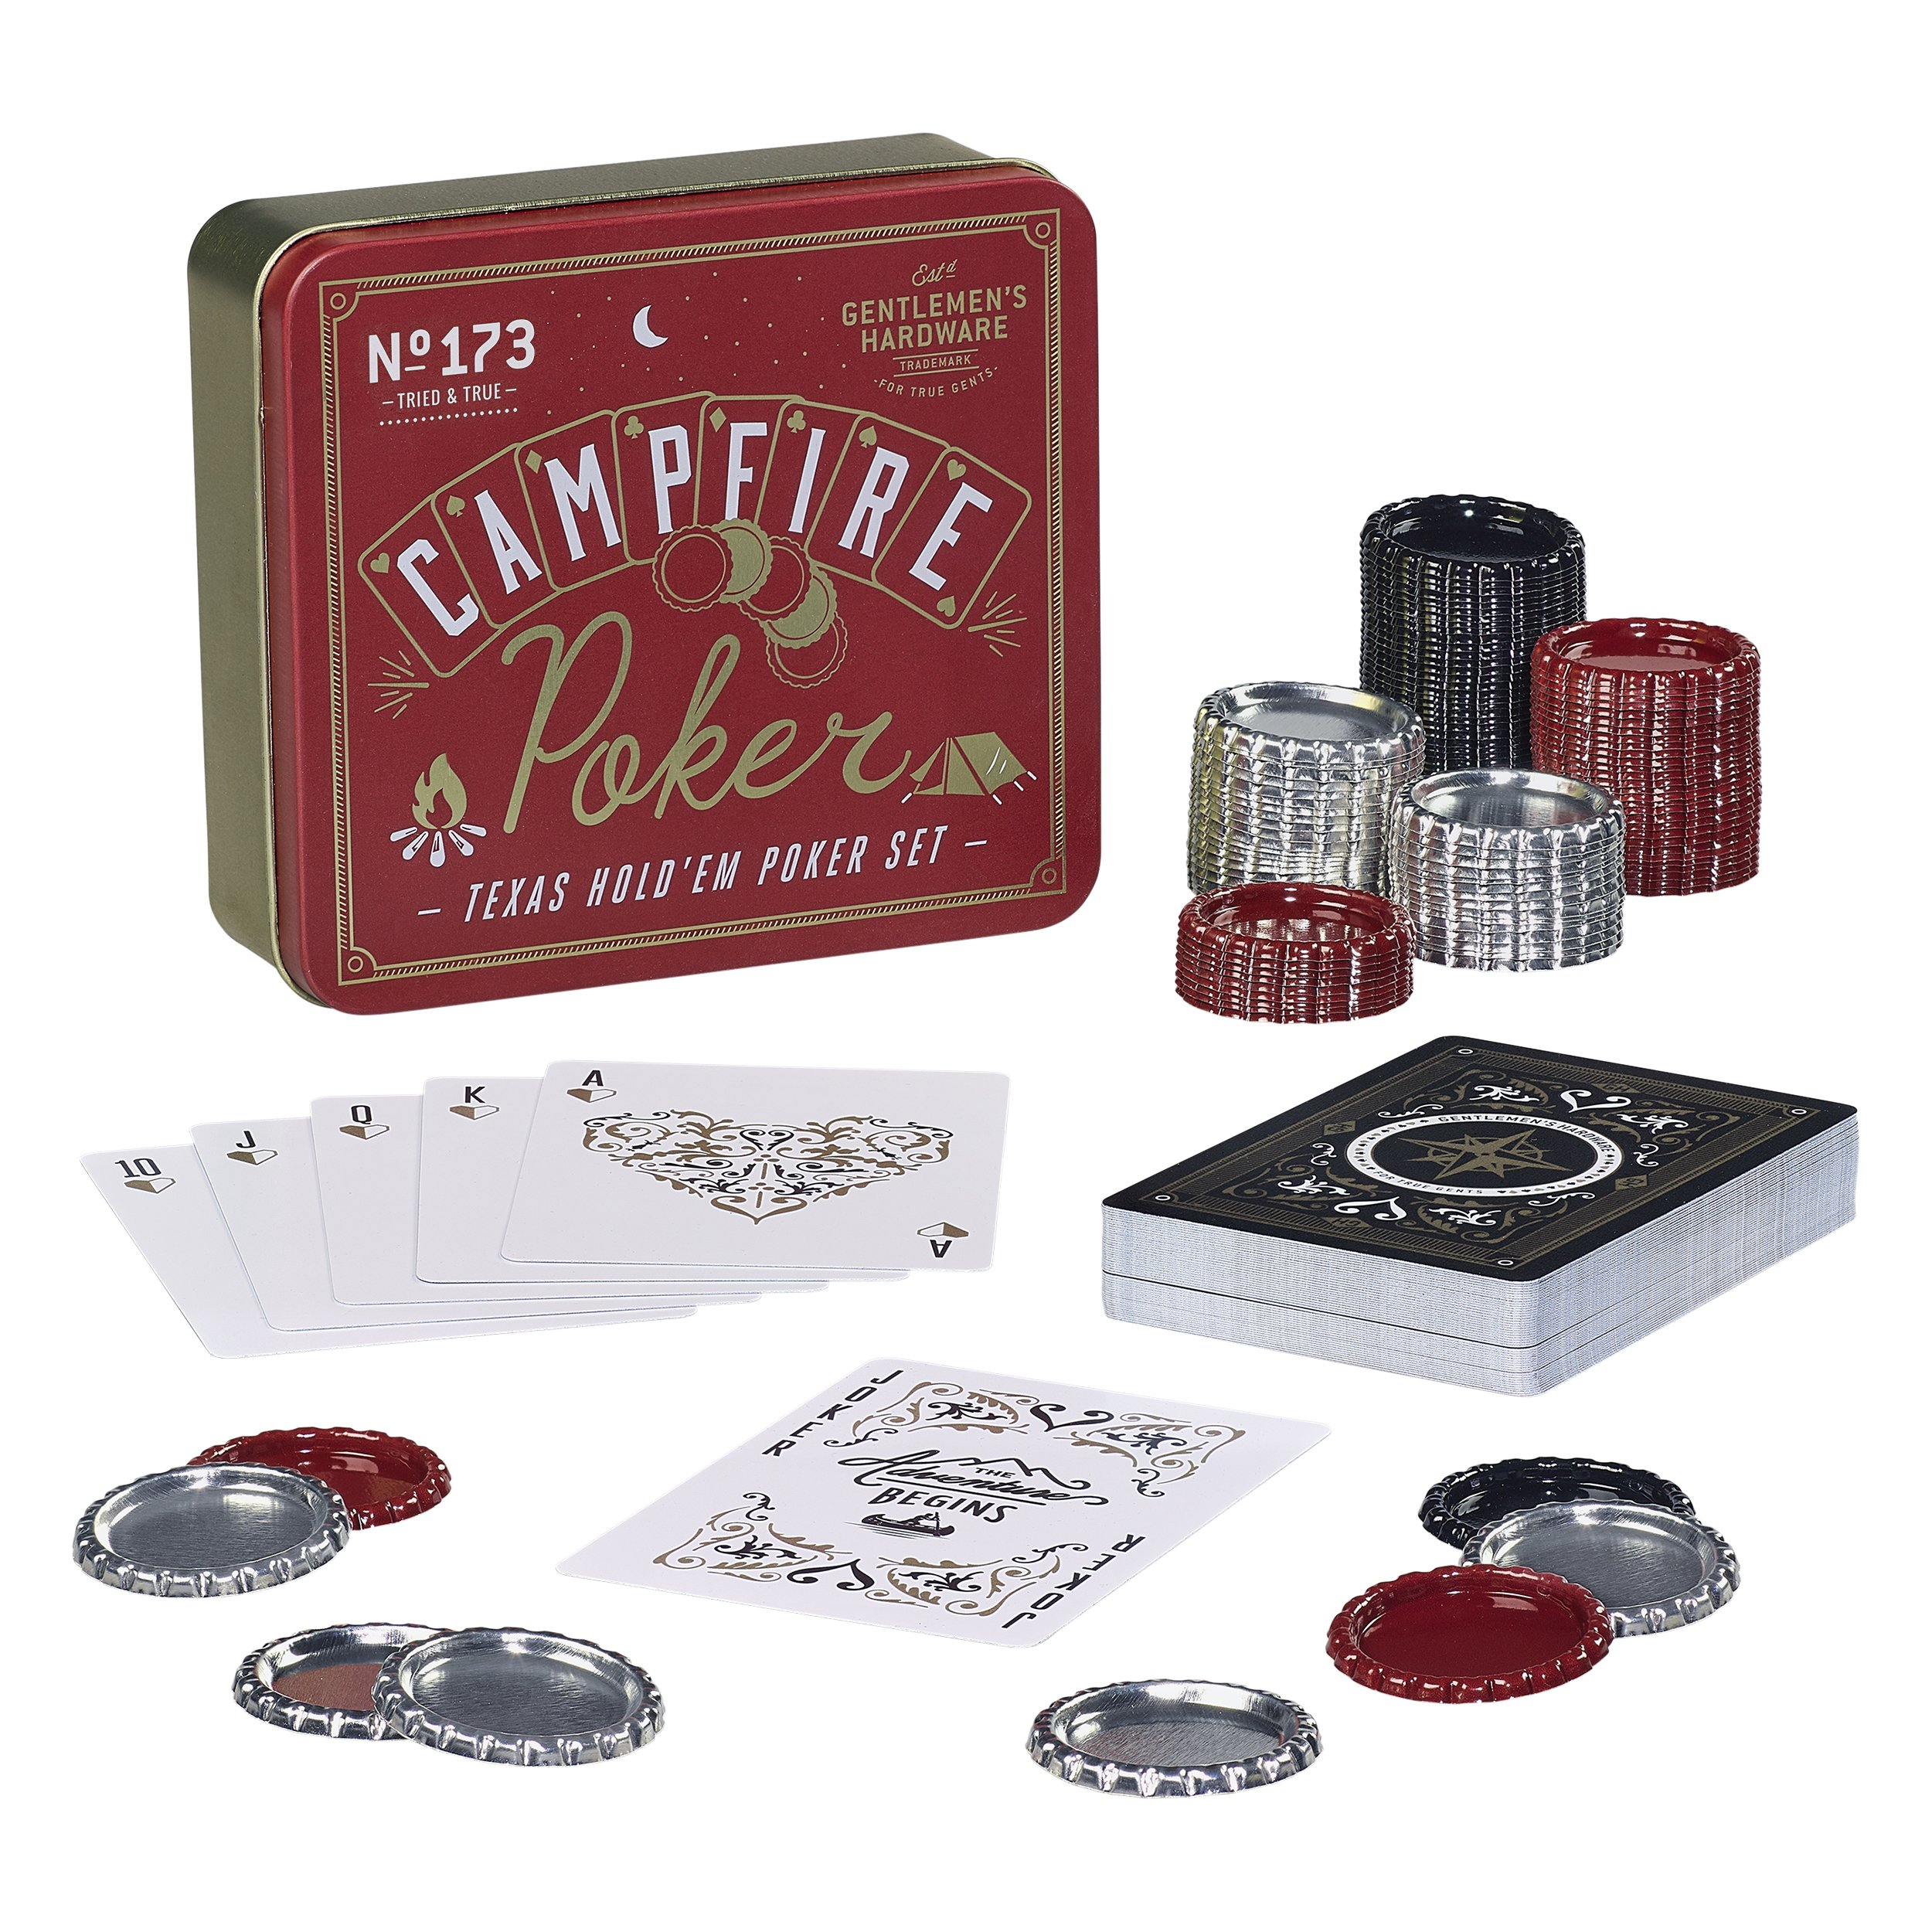 Gentlemen's Hardware Campfire Texas Hold'em Travel Poker Set with Bottle Cap Chips by Gentlemen's Hardware